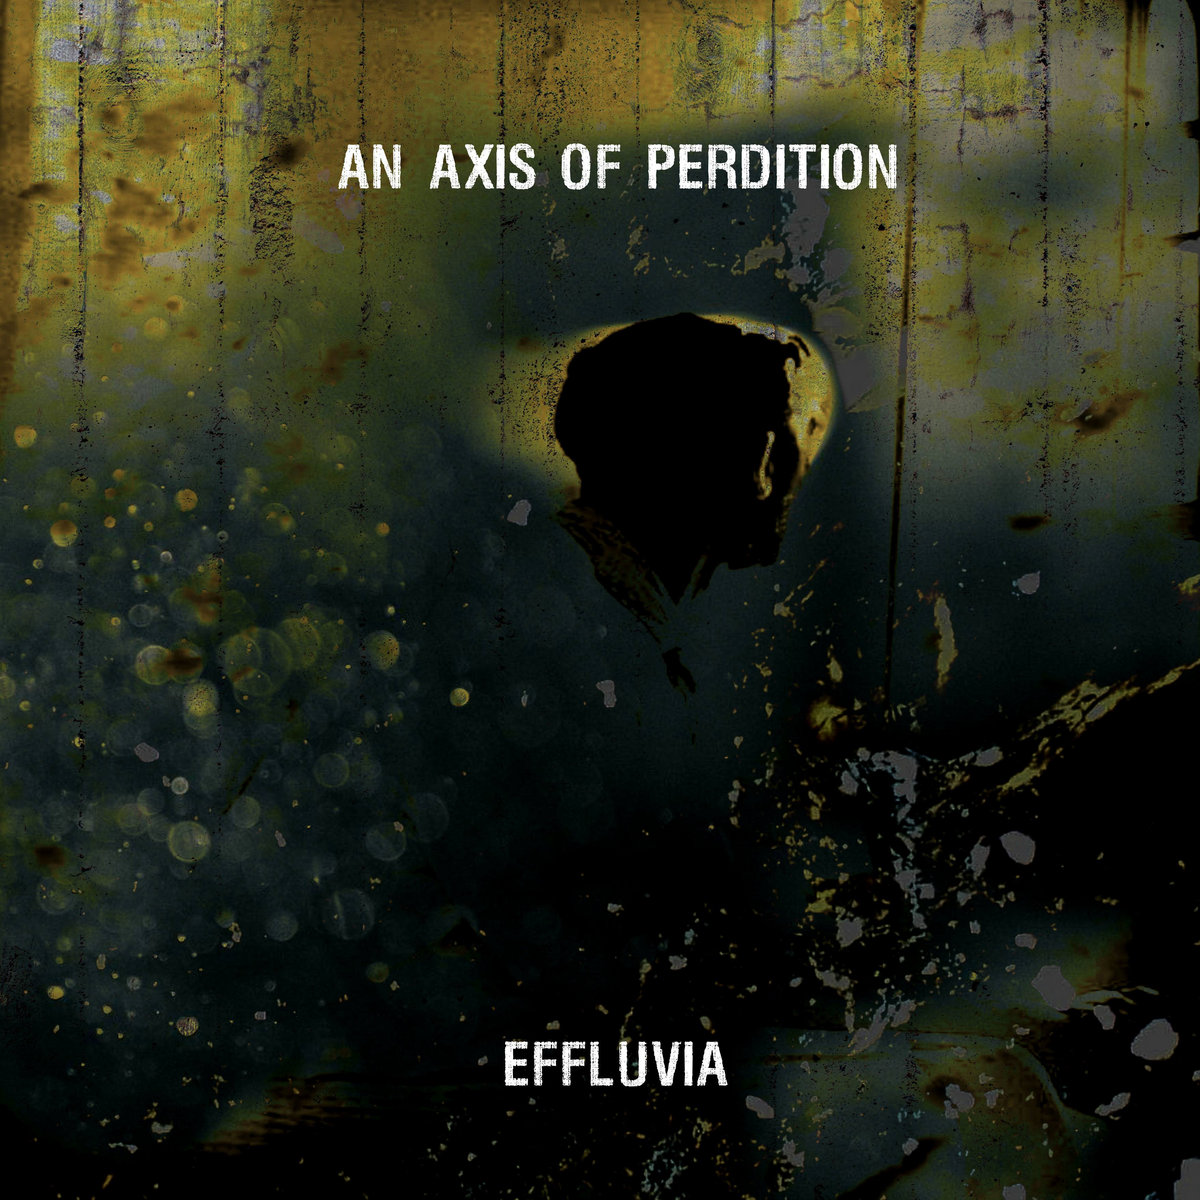 an axis of perdition effluvia cover art